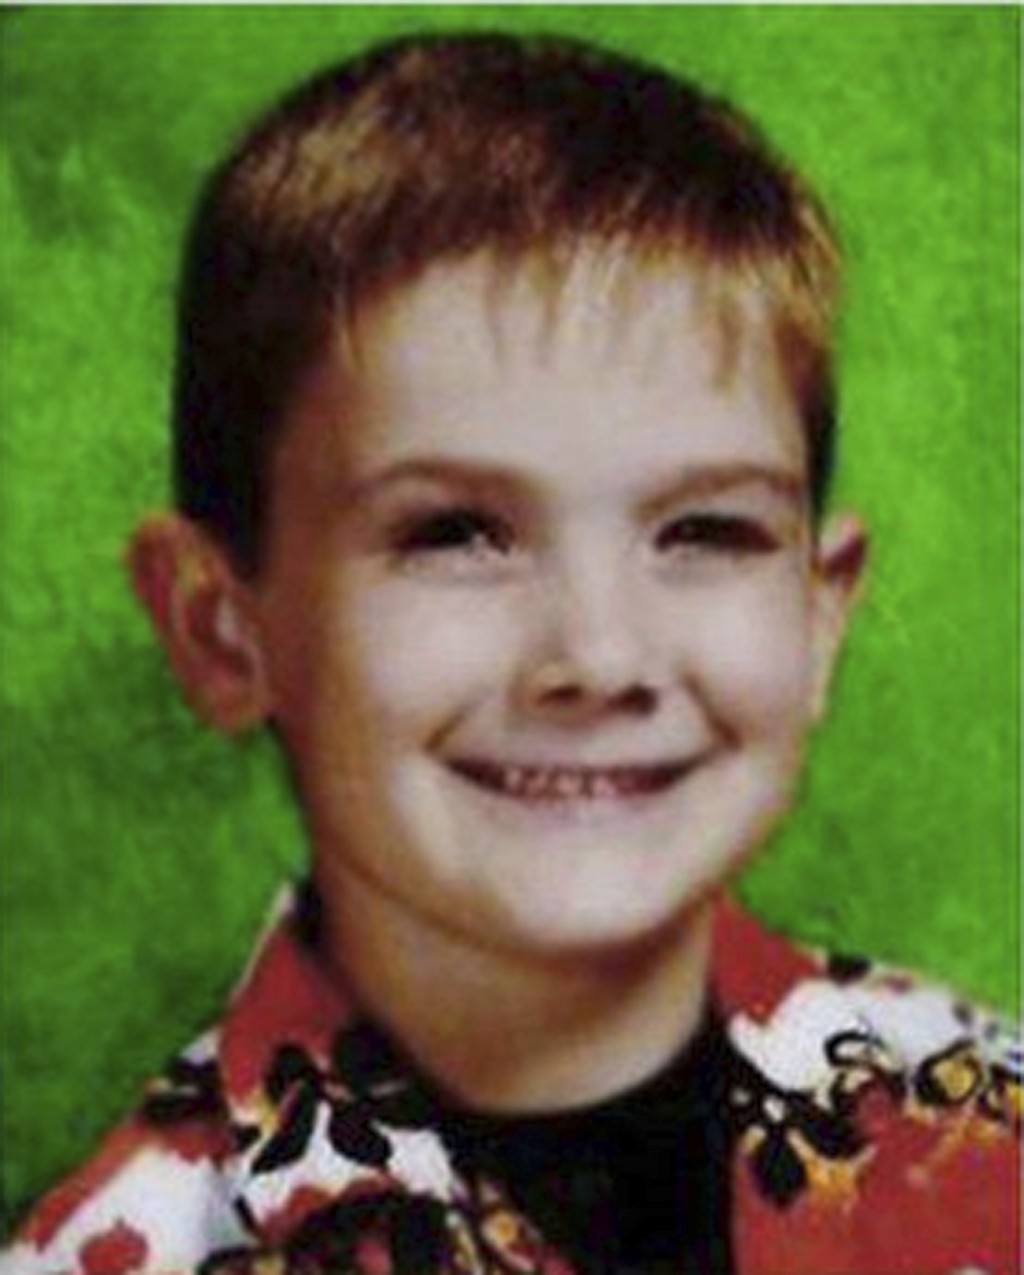 This undated photo provided by the Aurora, Ill., Police Department shows Timmothy Pitzen, missing since 2011. A young man's claim to be Timmothy, the ...